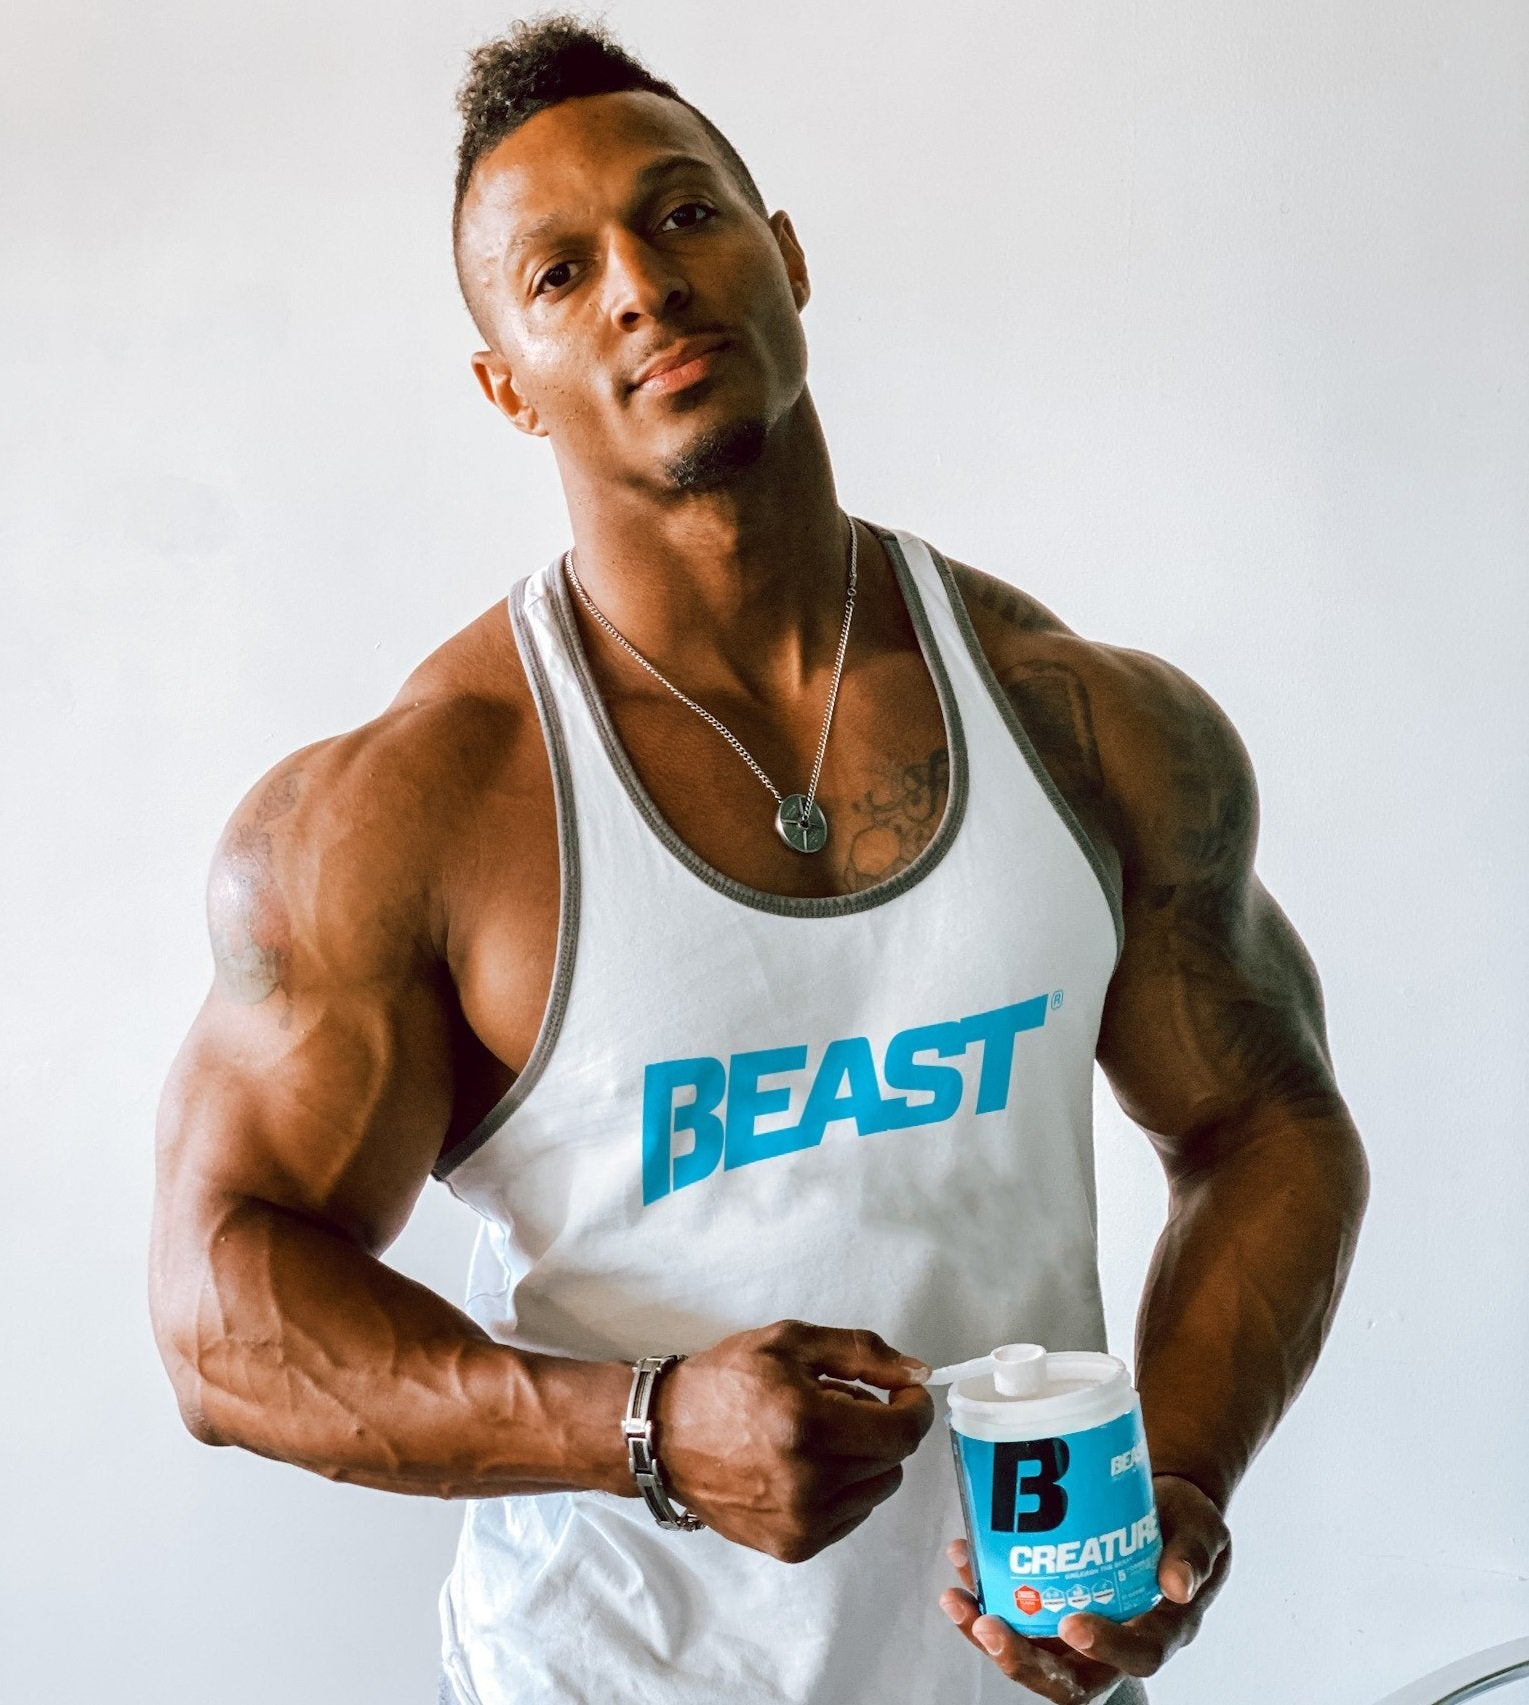 CREATINE HAS BEEN AROUND FOR NEARLY 30 YEARS - HERE'S WHY